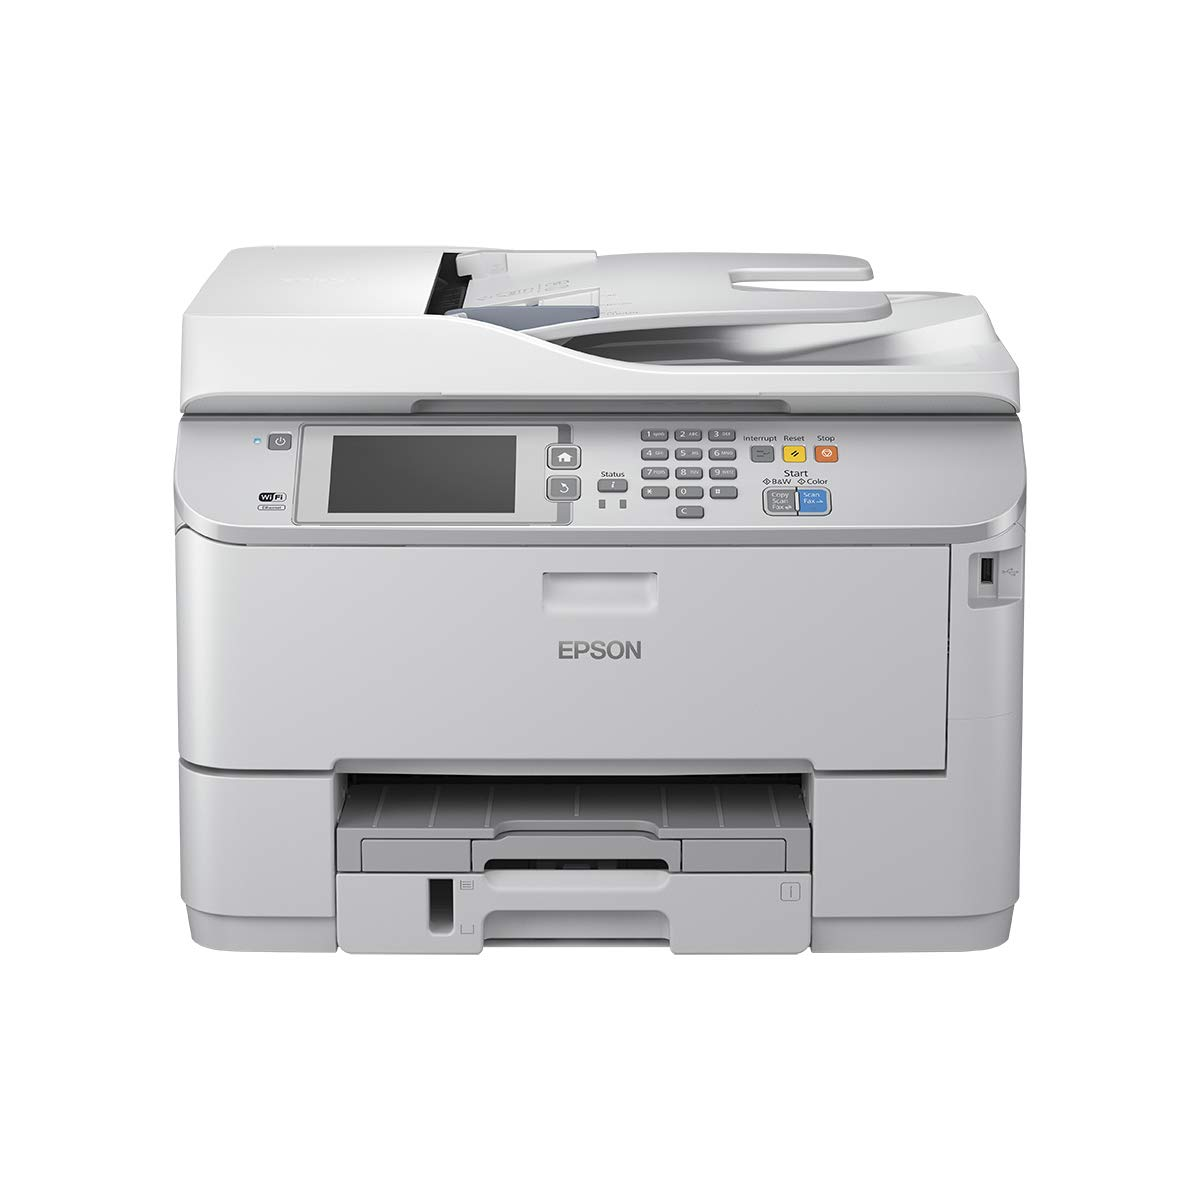 Epson WF-R5691	4 Colour A4 size Photo/5760*1440, CIS Ink Tank system builtin , Duplex Print/Scan , DADF,Direct WiFi , Network